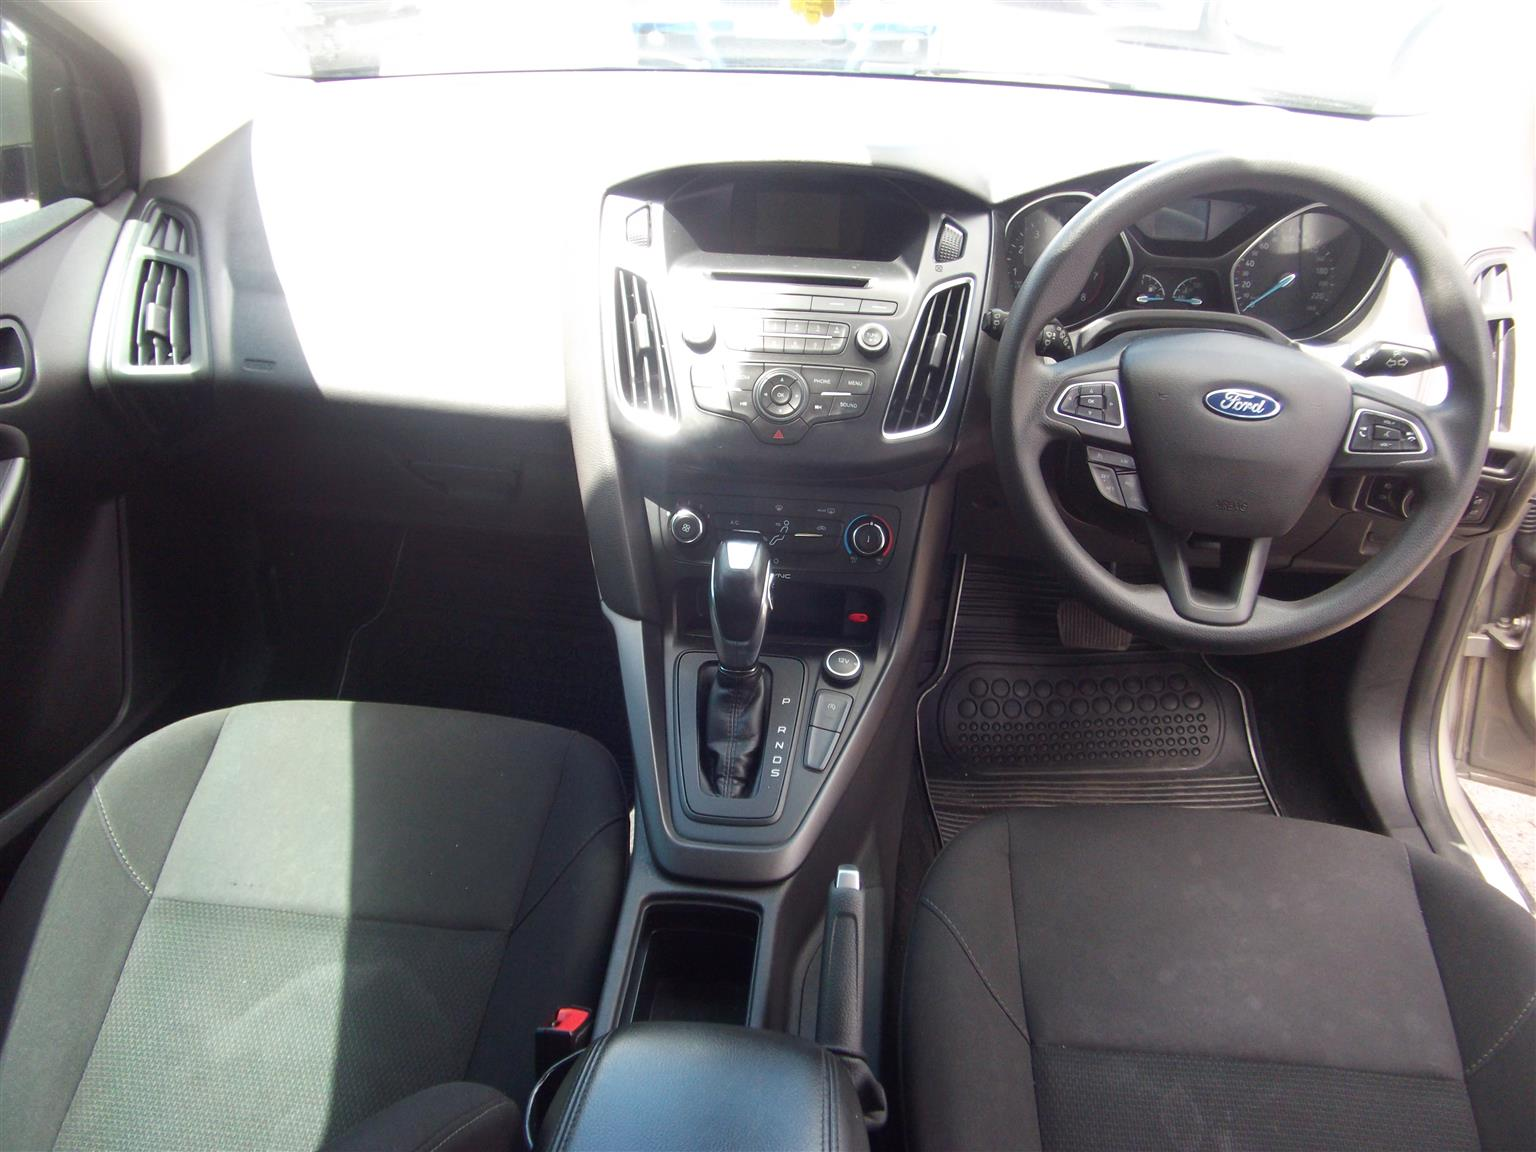 2016 Ford Focus hatch 1.5T Trend auto